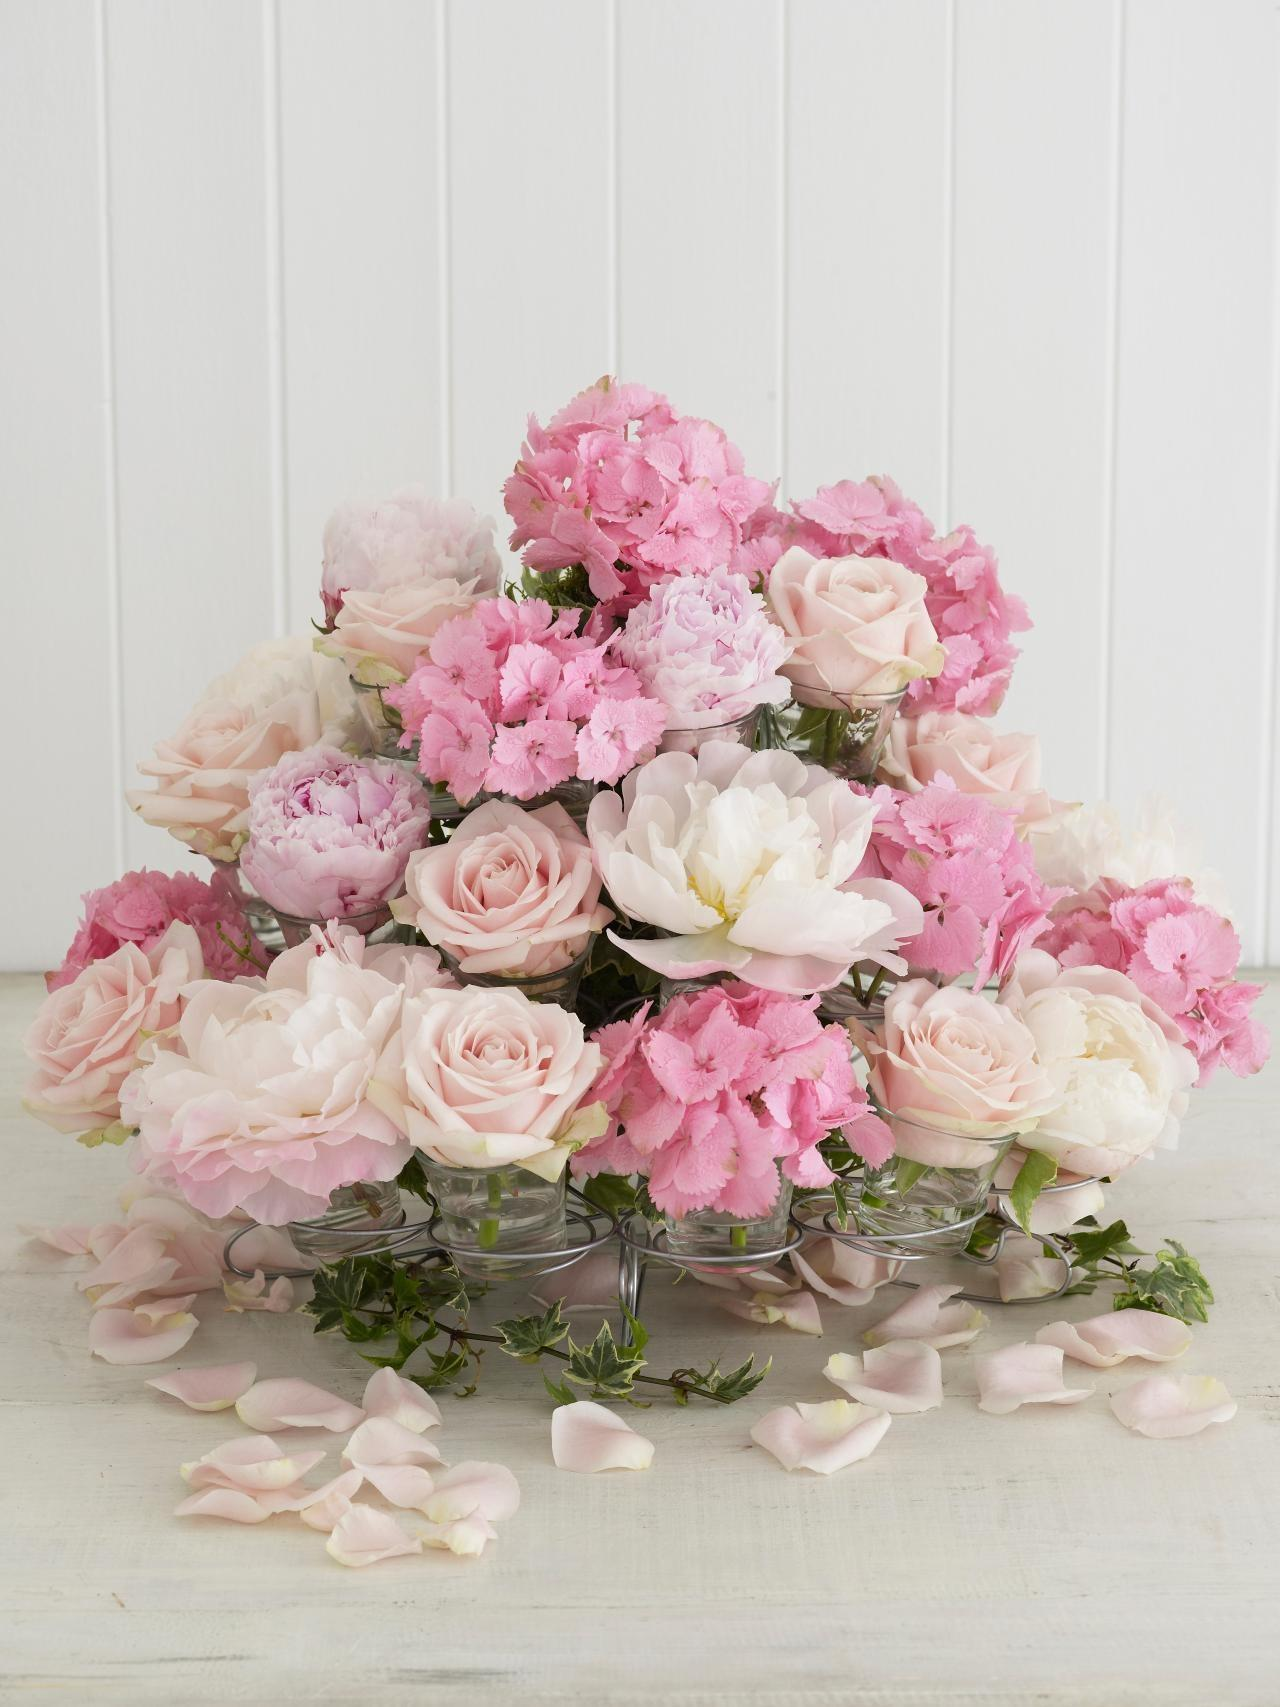 Sweeten Your Table Floral Cupcake Centerpiece